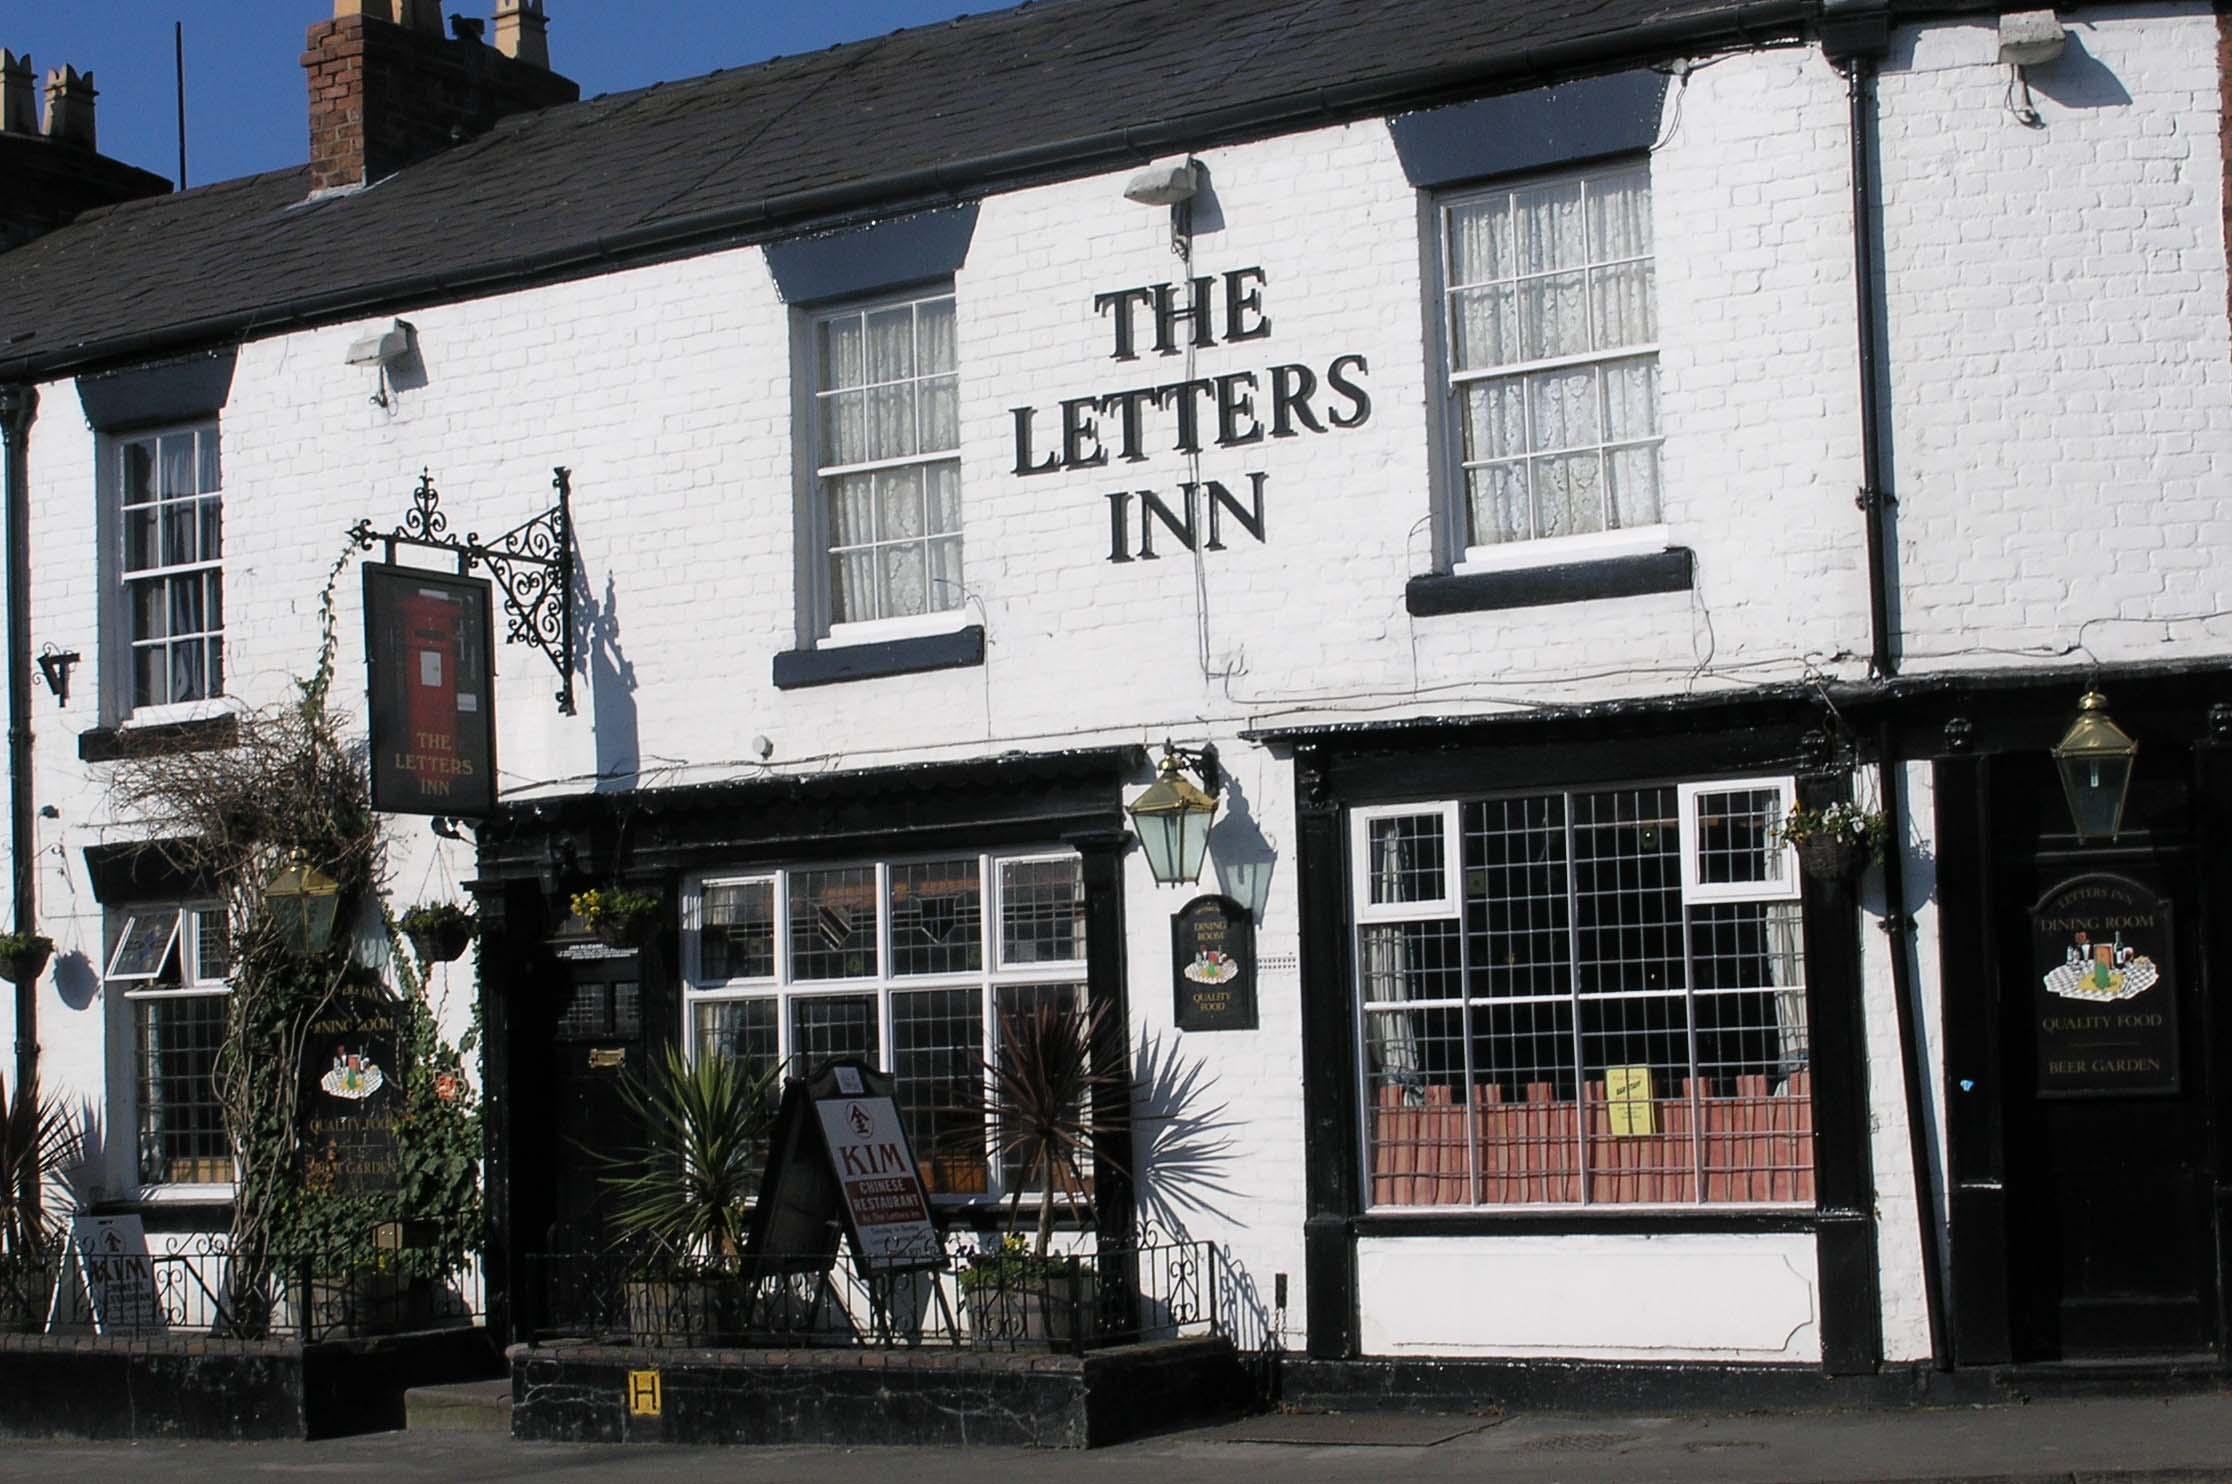 The Letters Inn Tattenhall